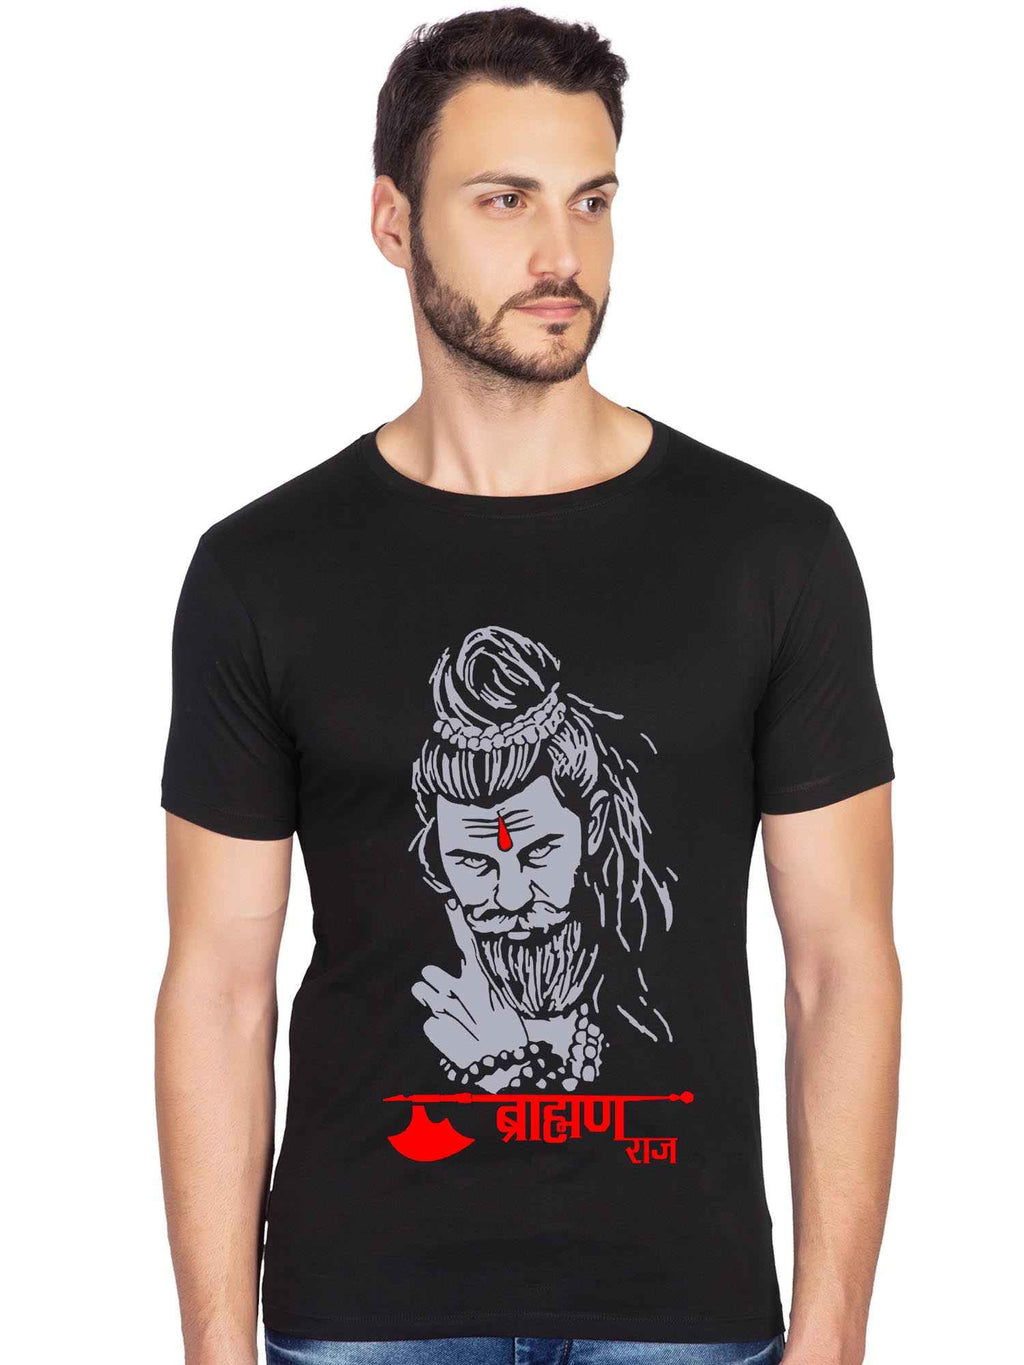 Brahman Raj Graphic Printed Half Tshirt - bluehaat